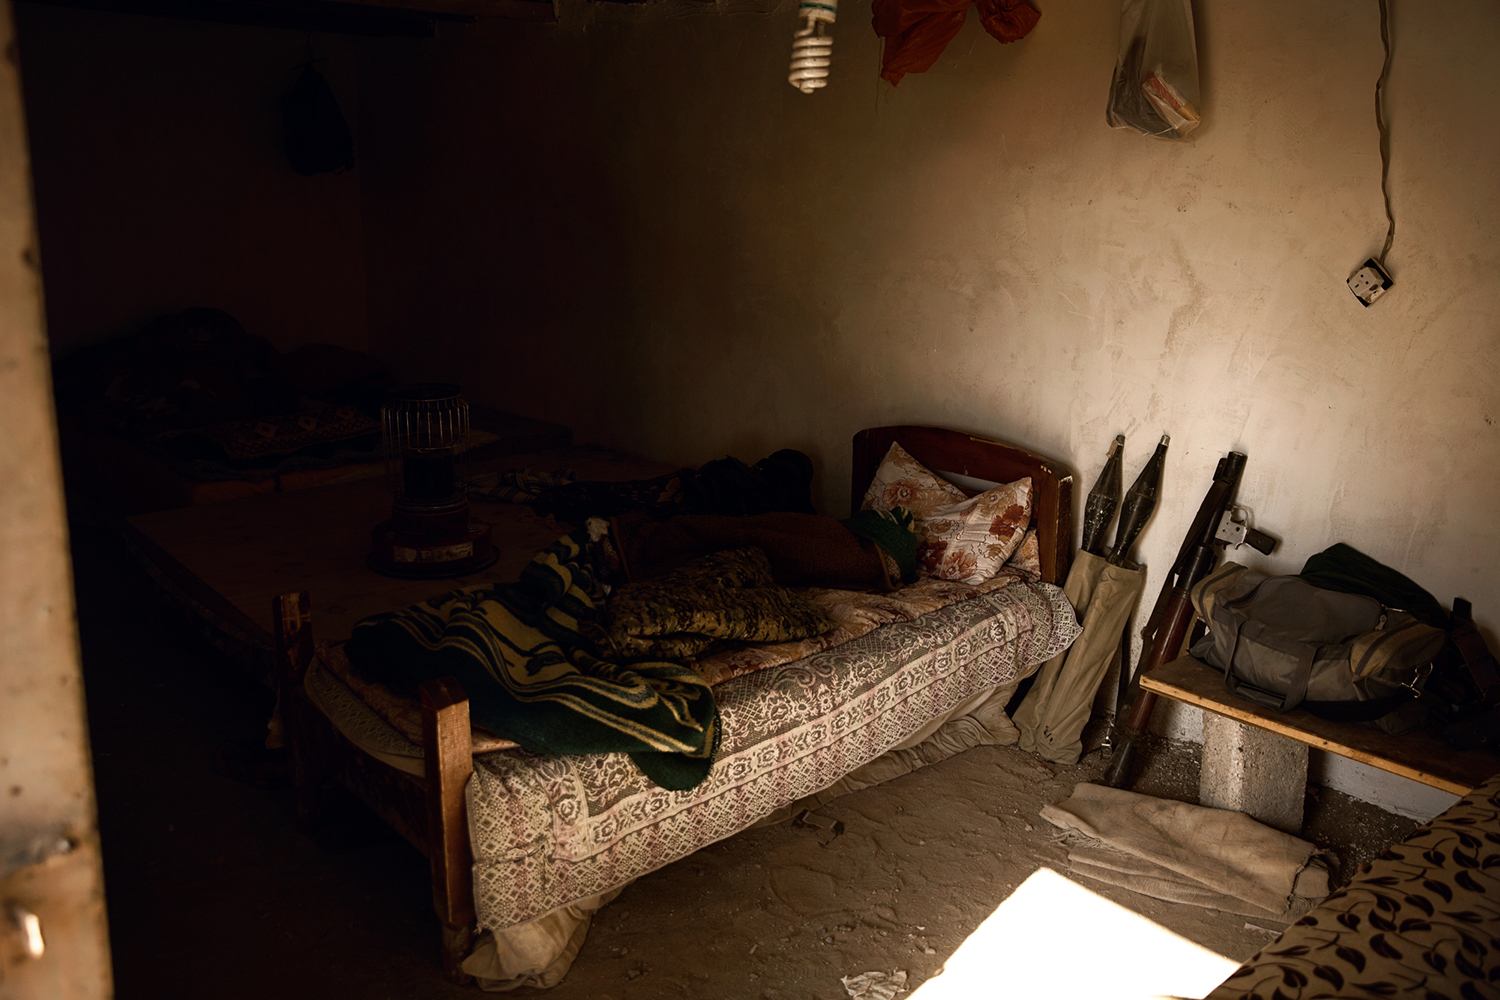 A Peshmerga soldiers bedroom with weapons next to it on the frontline